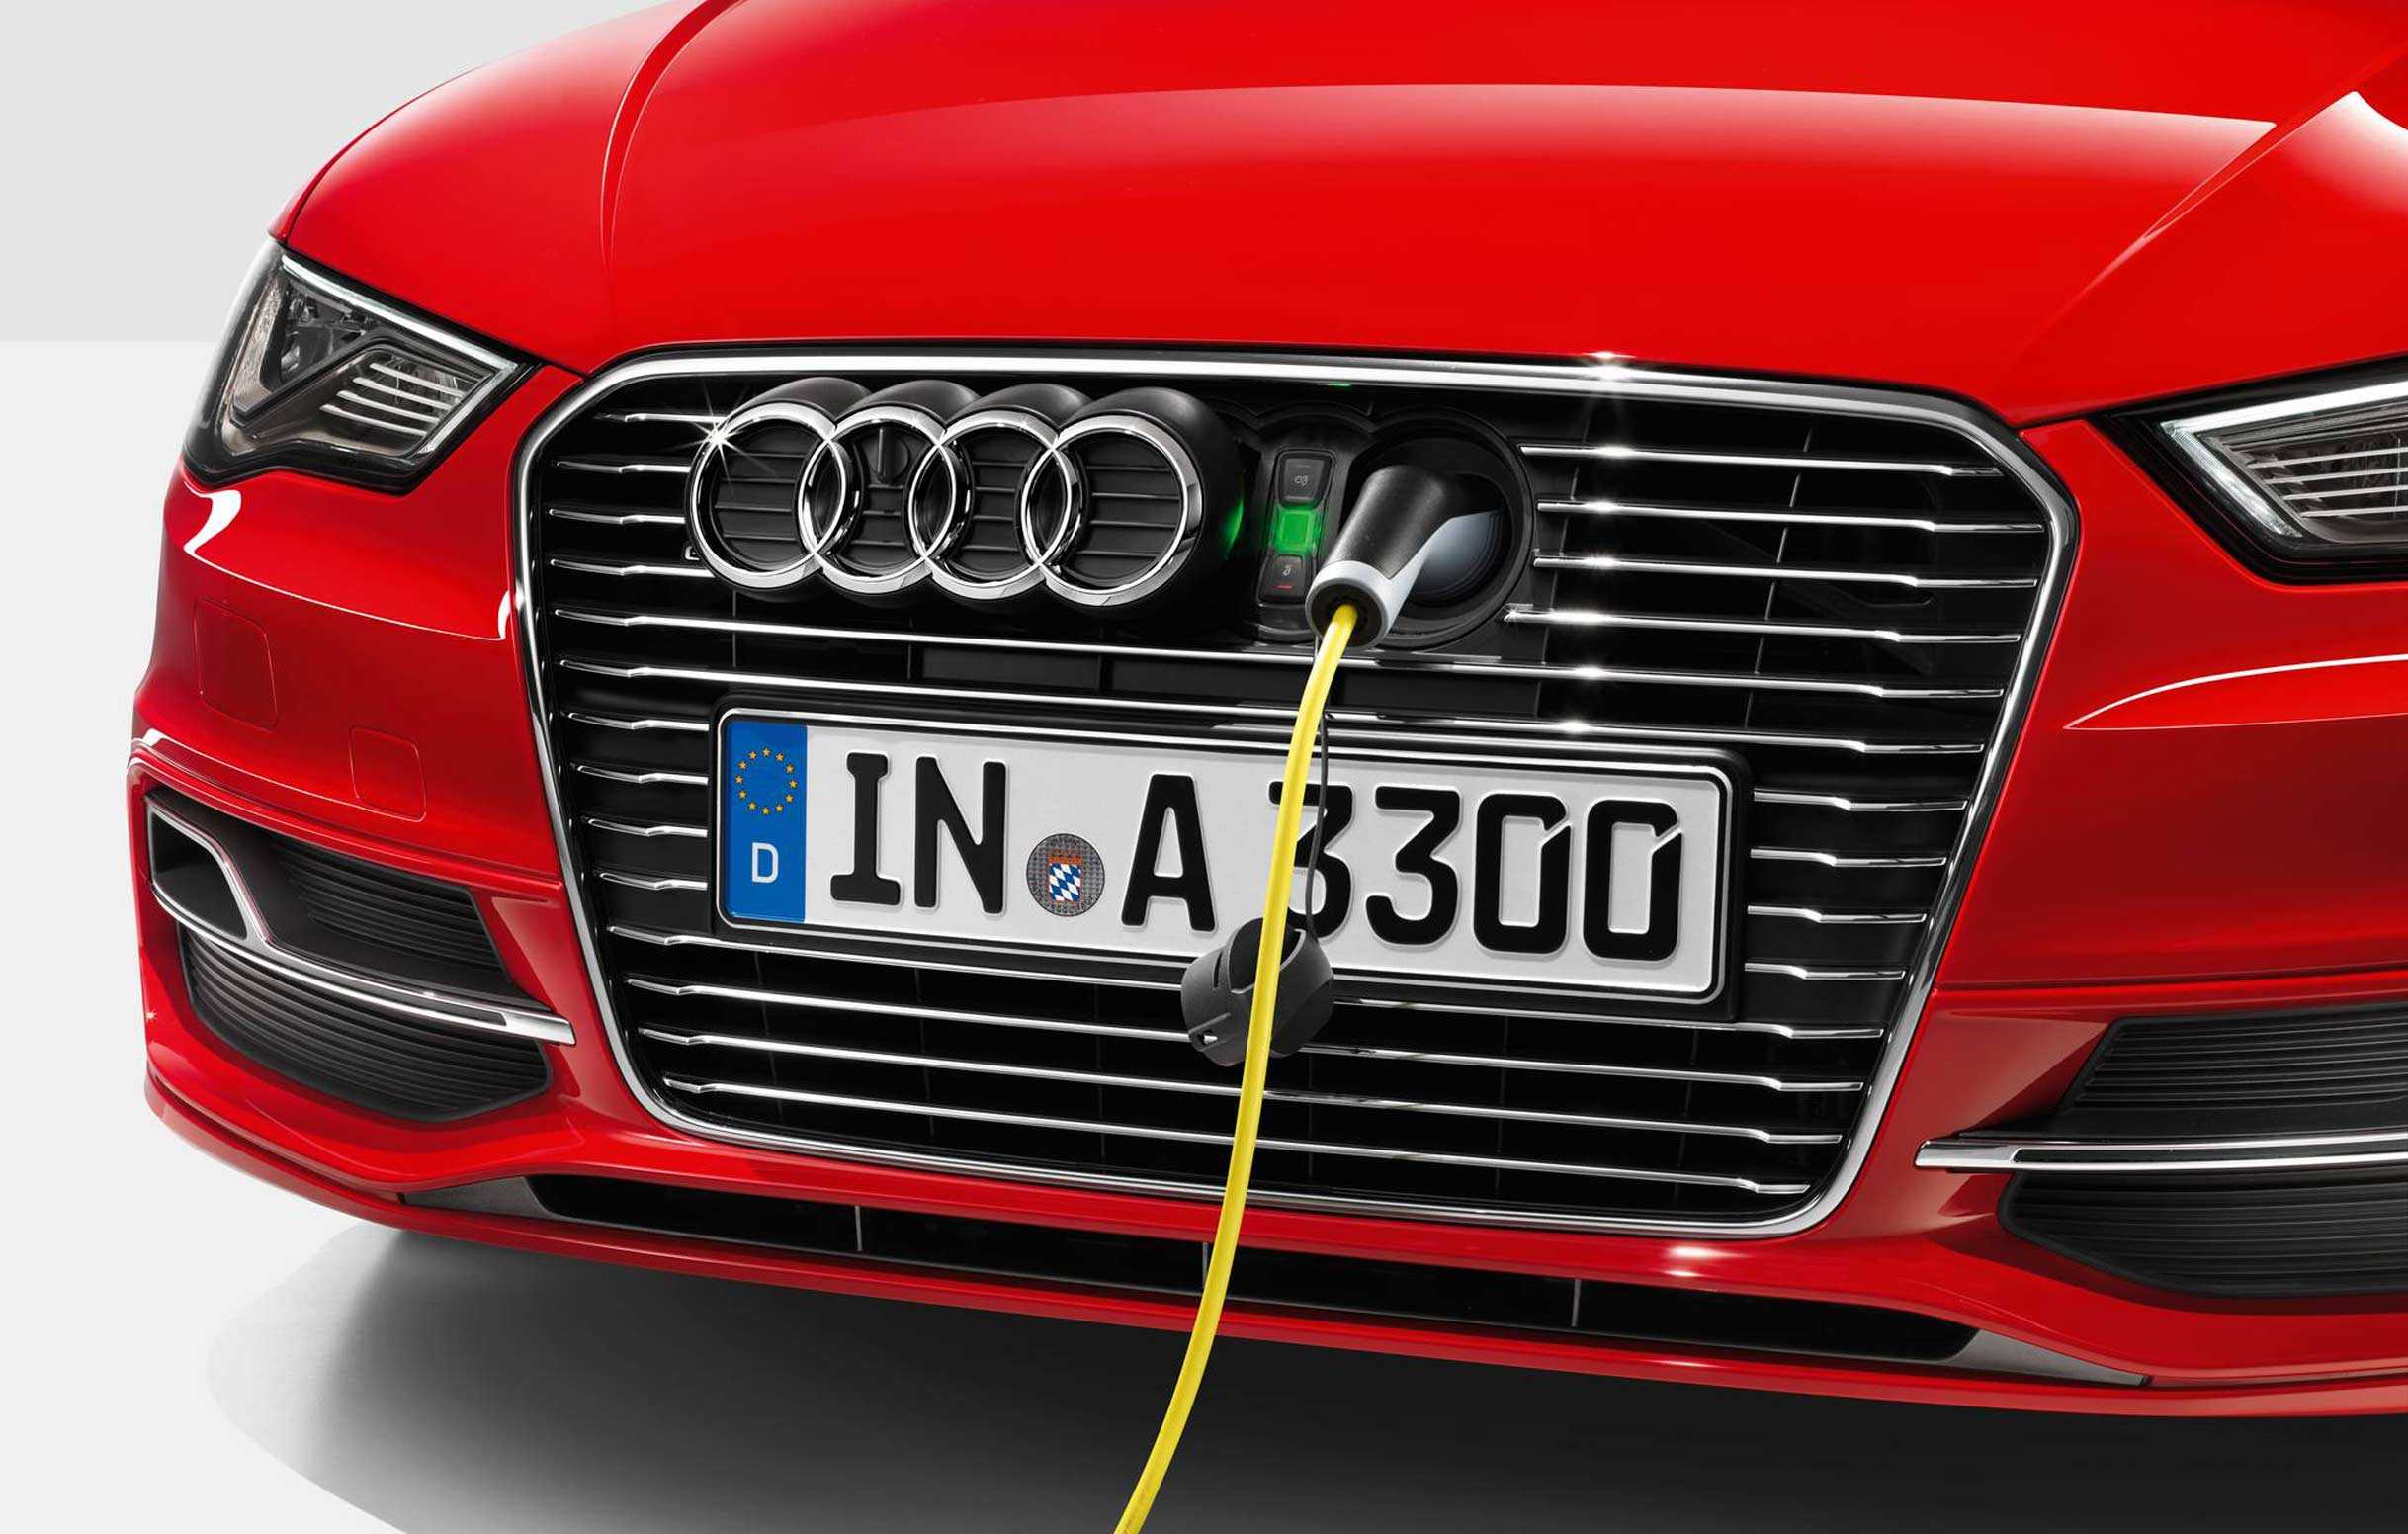 Audi Announces Pricing for A3 e-Tron Hybrid Car, Starts at $38,825